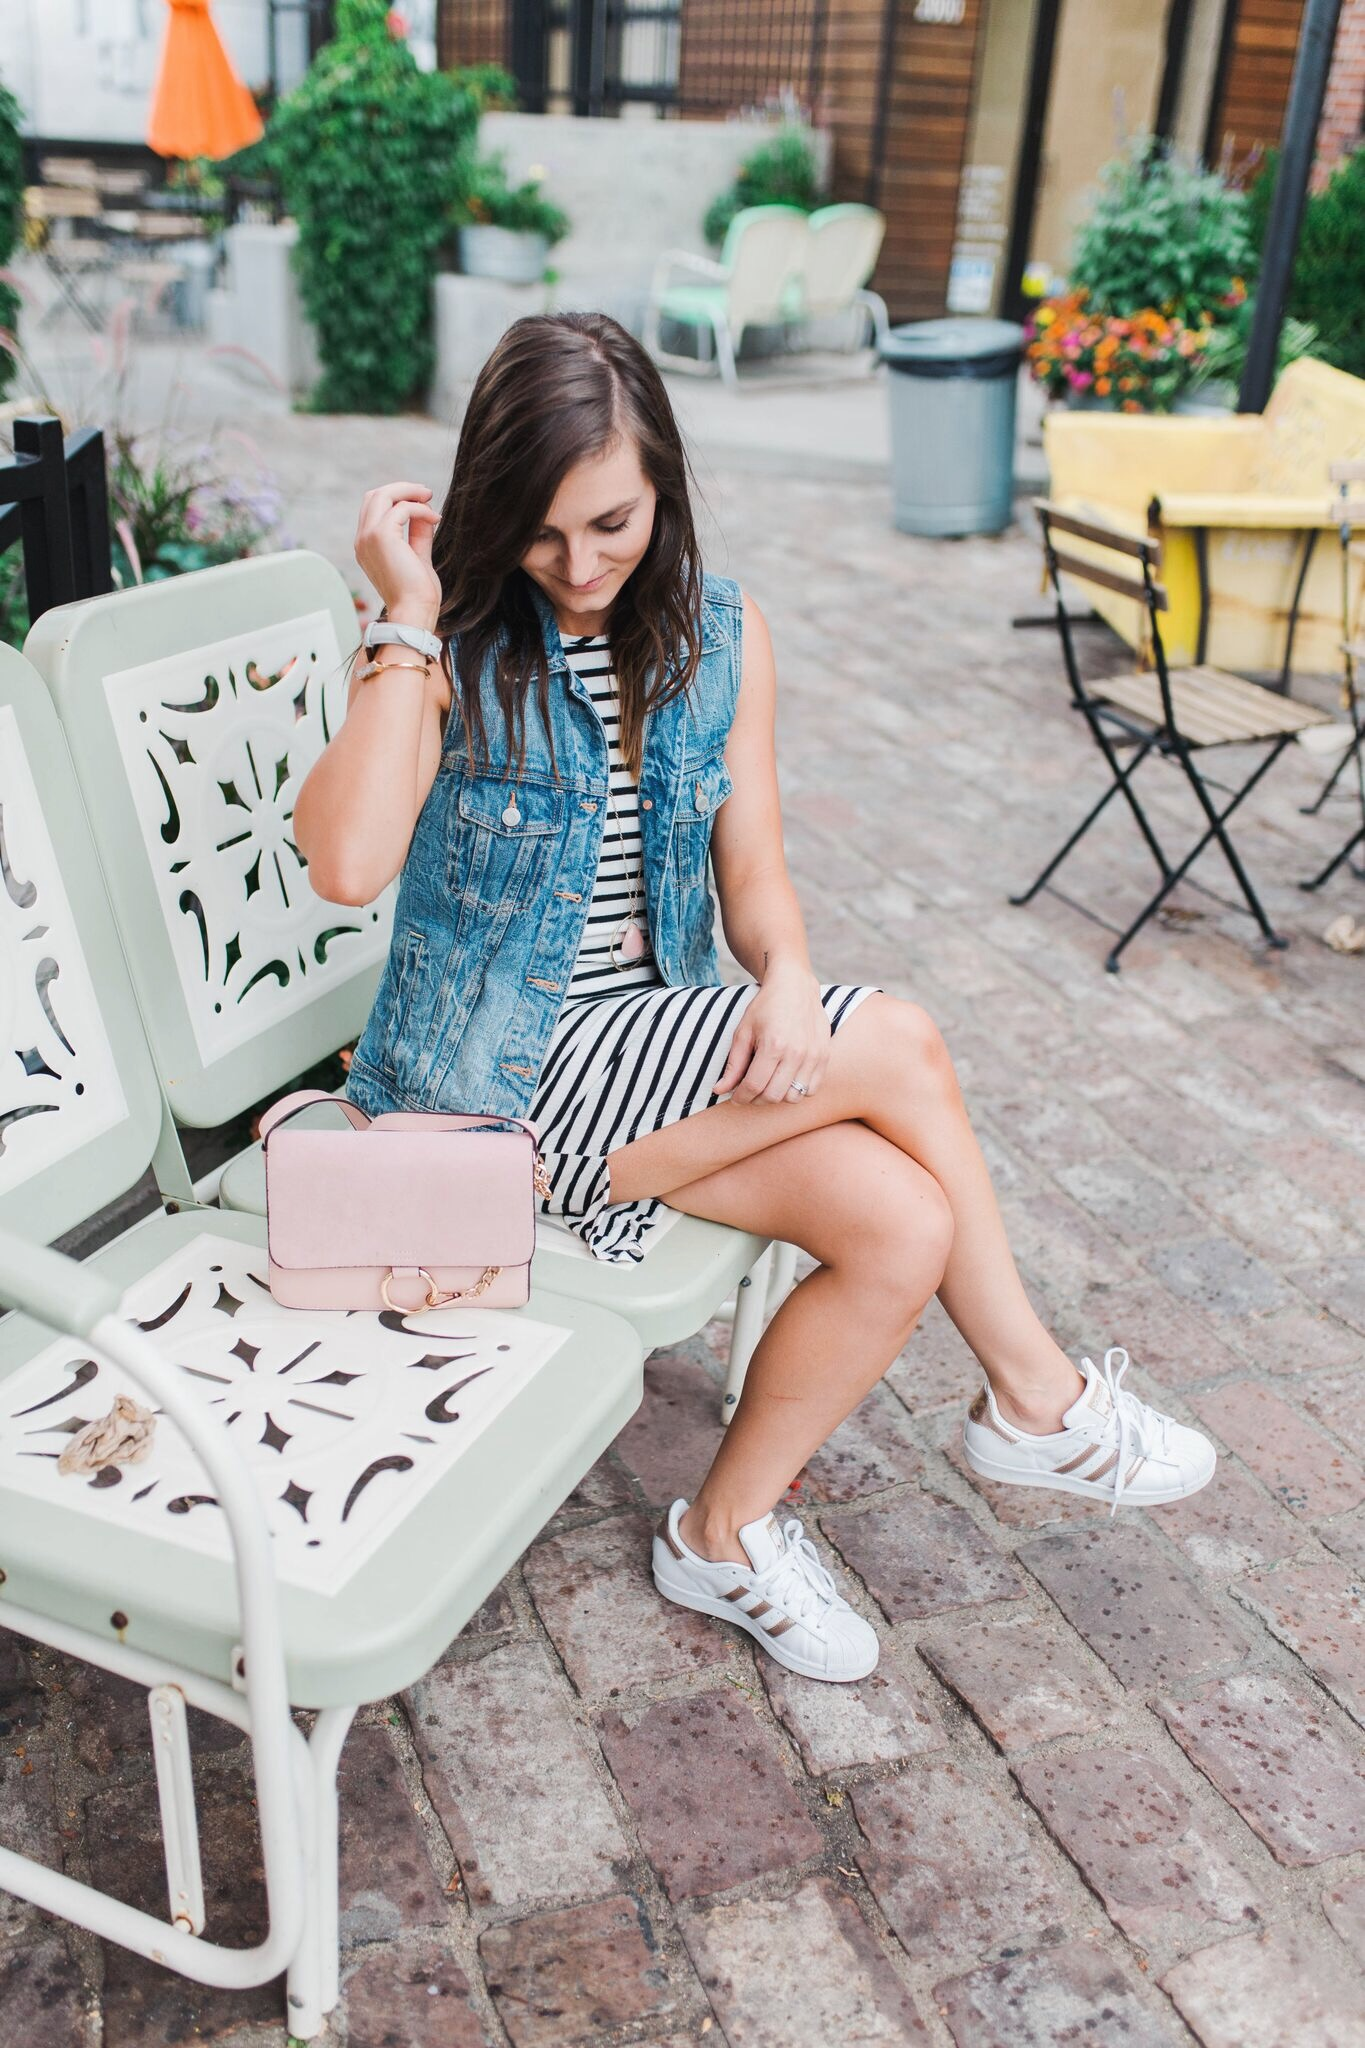 "<img src = ""how-to-style-sneakers.jpg"" alt = fashion-blogger-sitting-on-a-bench-wearing-a-black-and-white-striped-dress-denim-vest-and-rose-gold-adidas-superstars>"